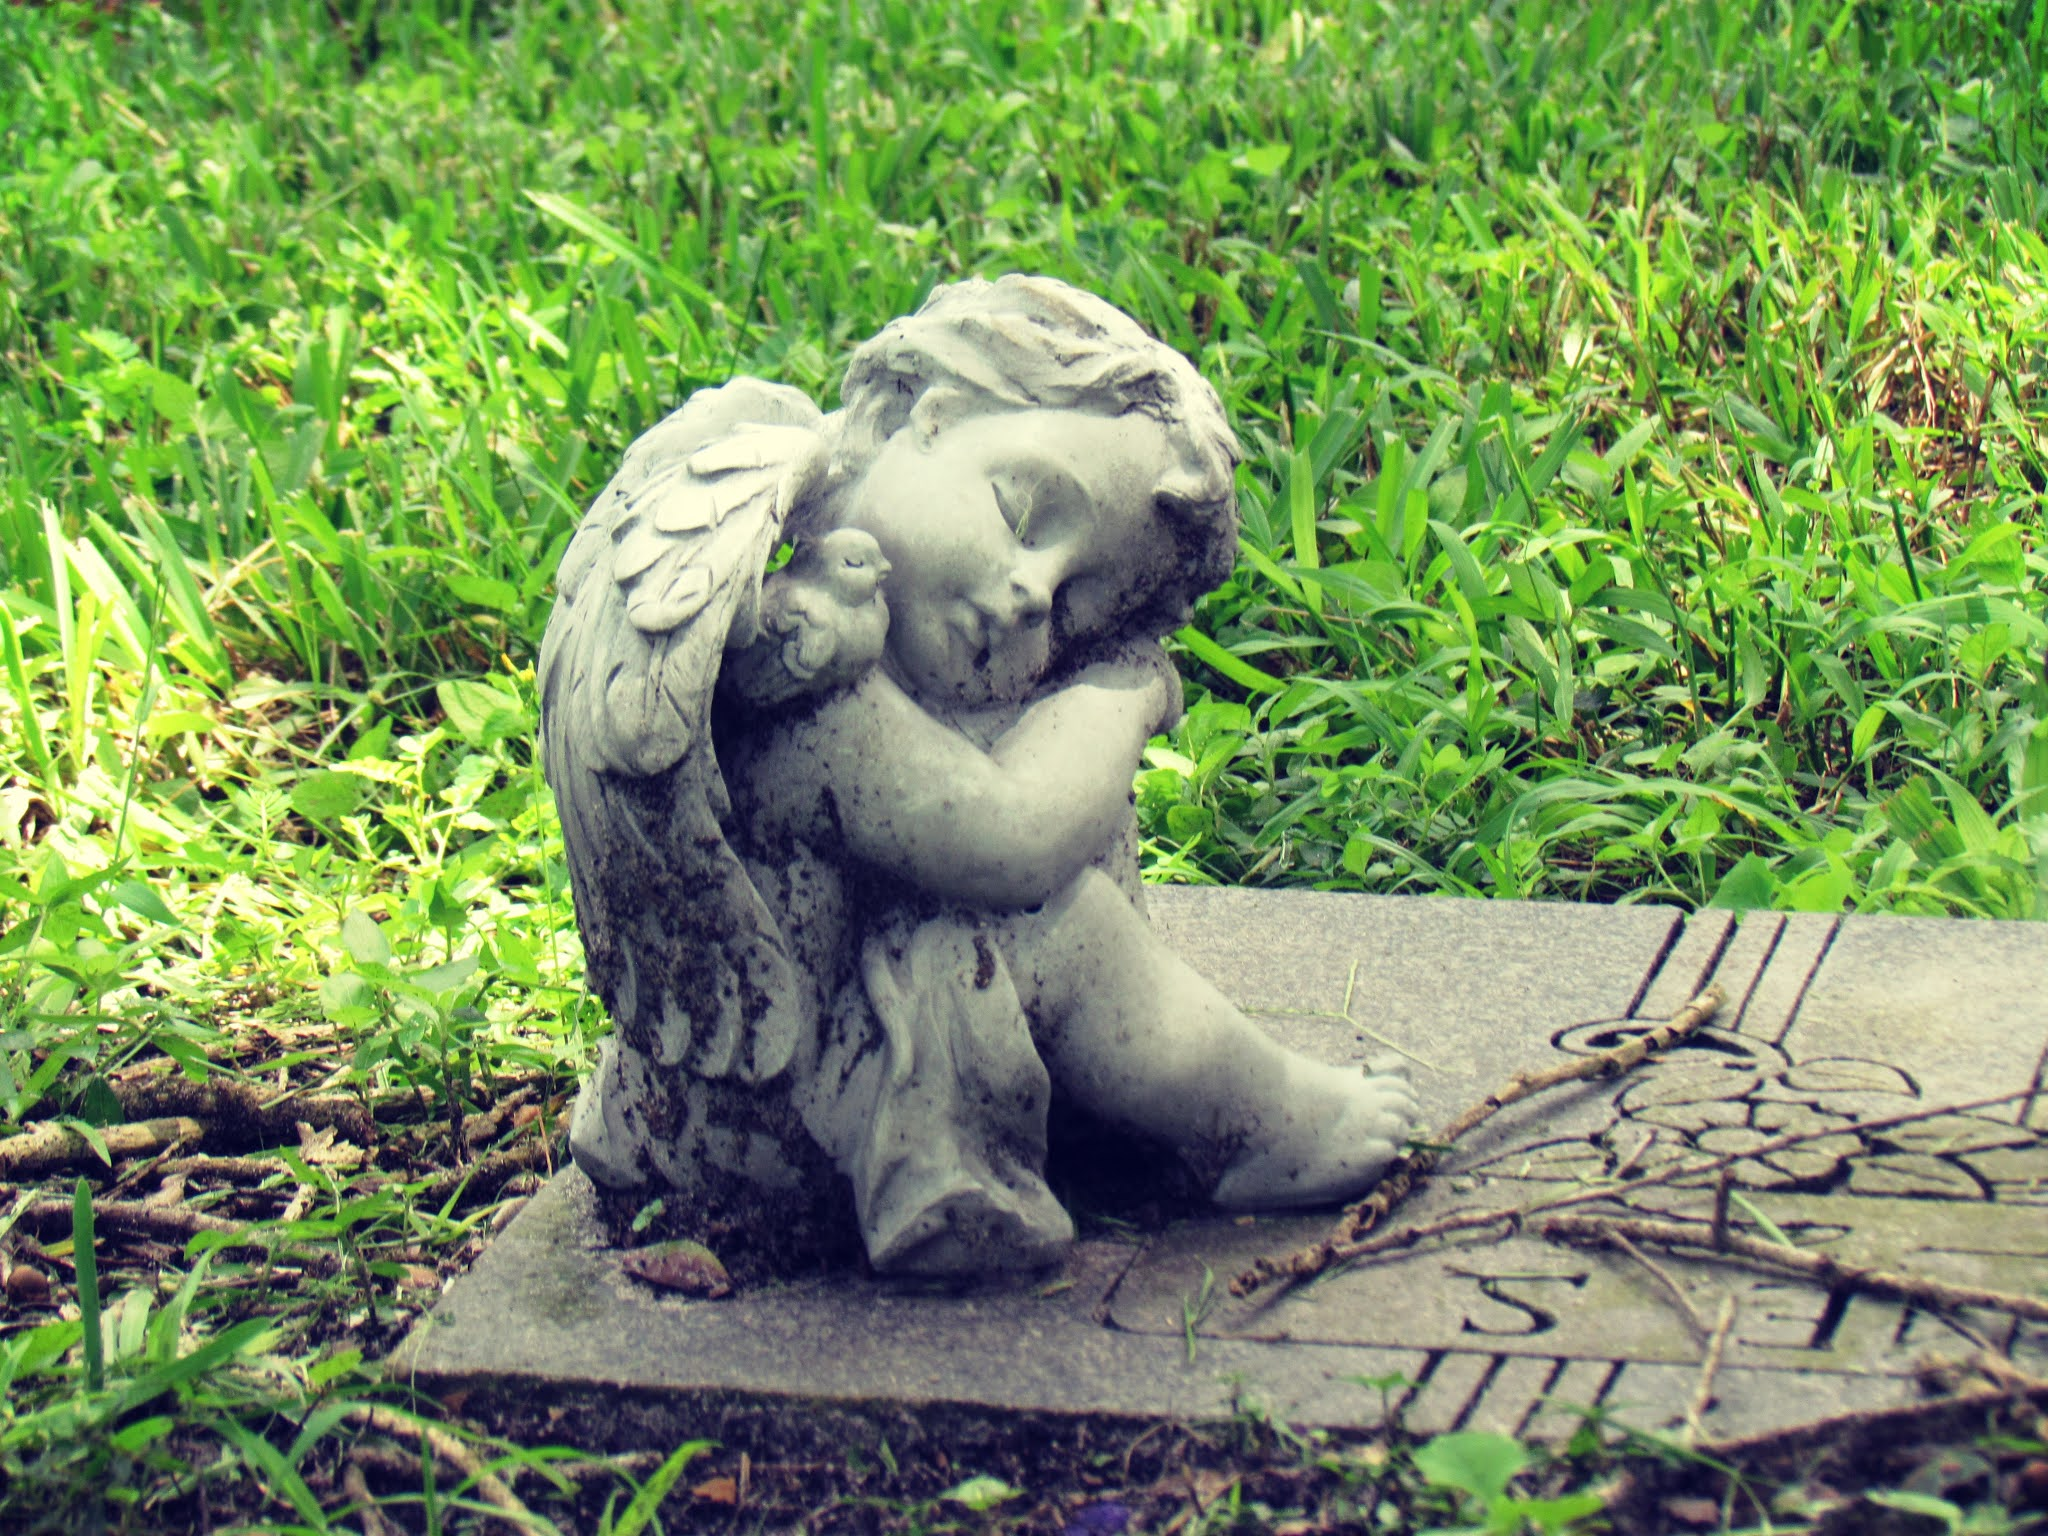 A headstone with an angel statue in the garden of the Dunedin Cemetery in Florida